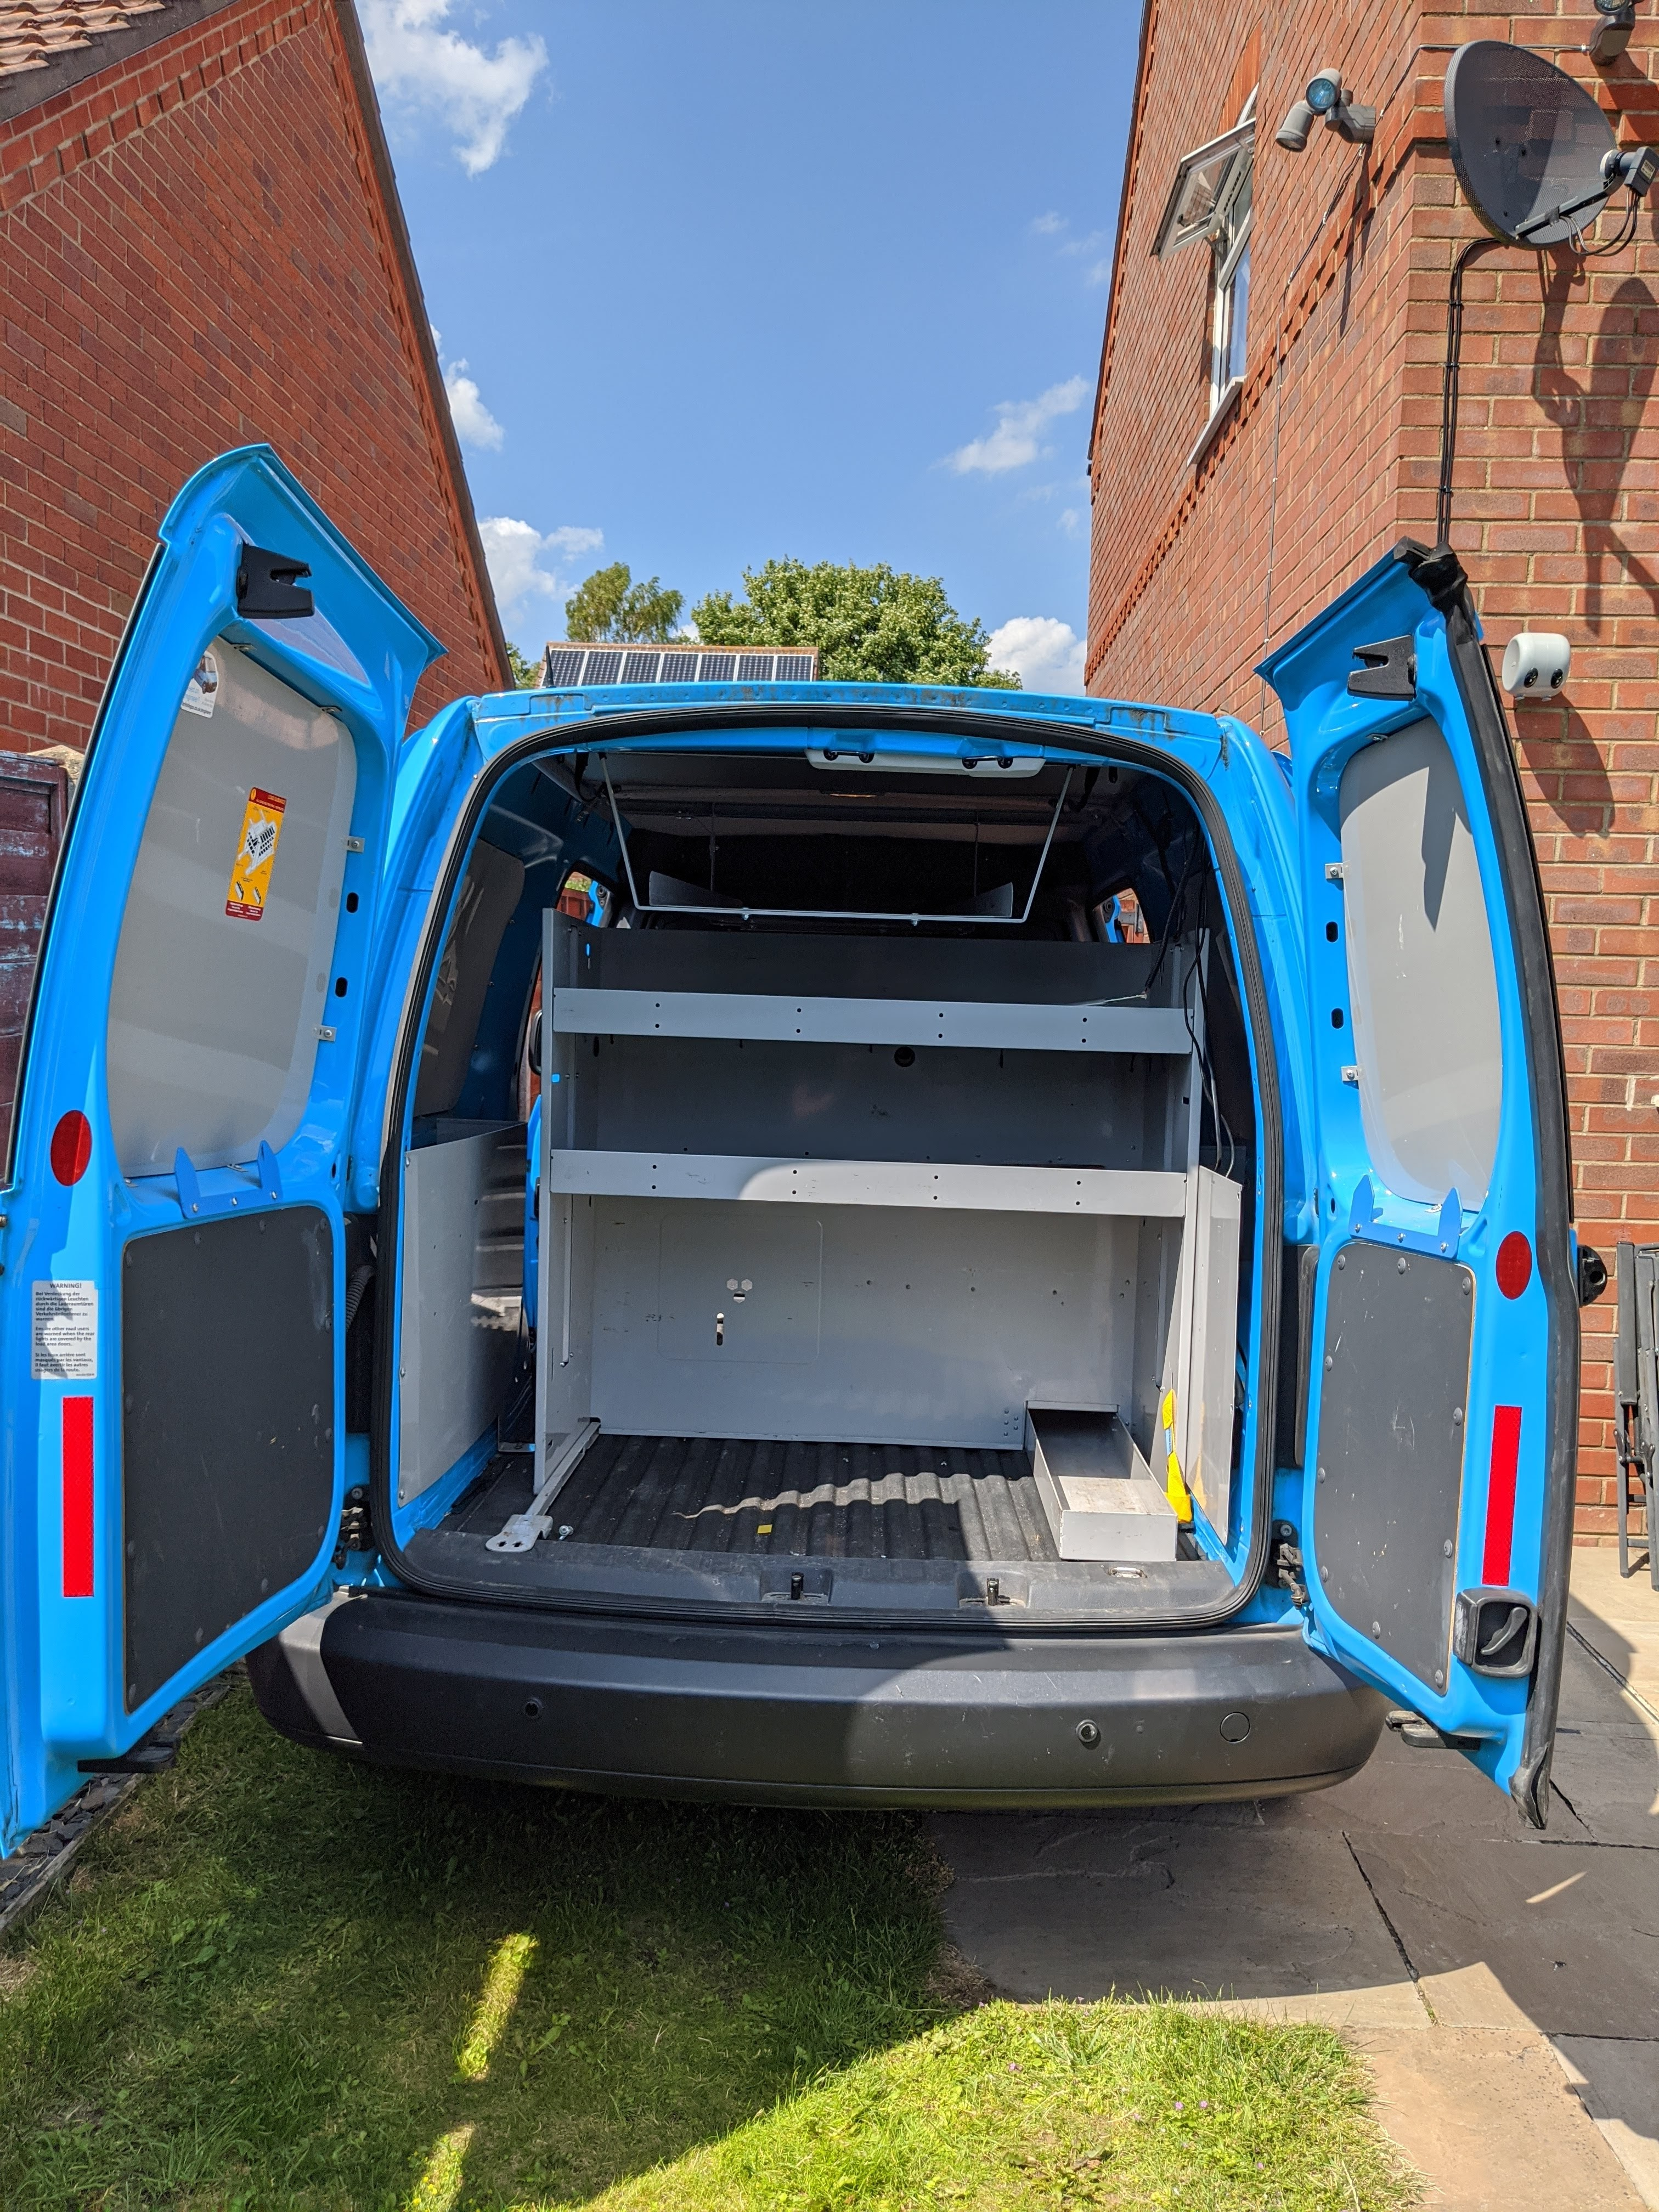 Stripping out a VW Caddy Maxi to convert into a Caddy Camper